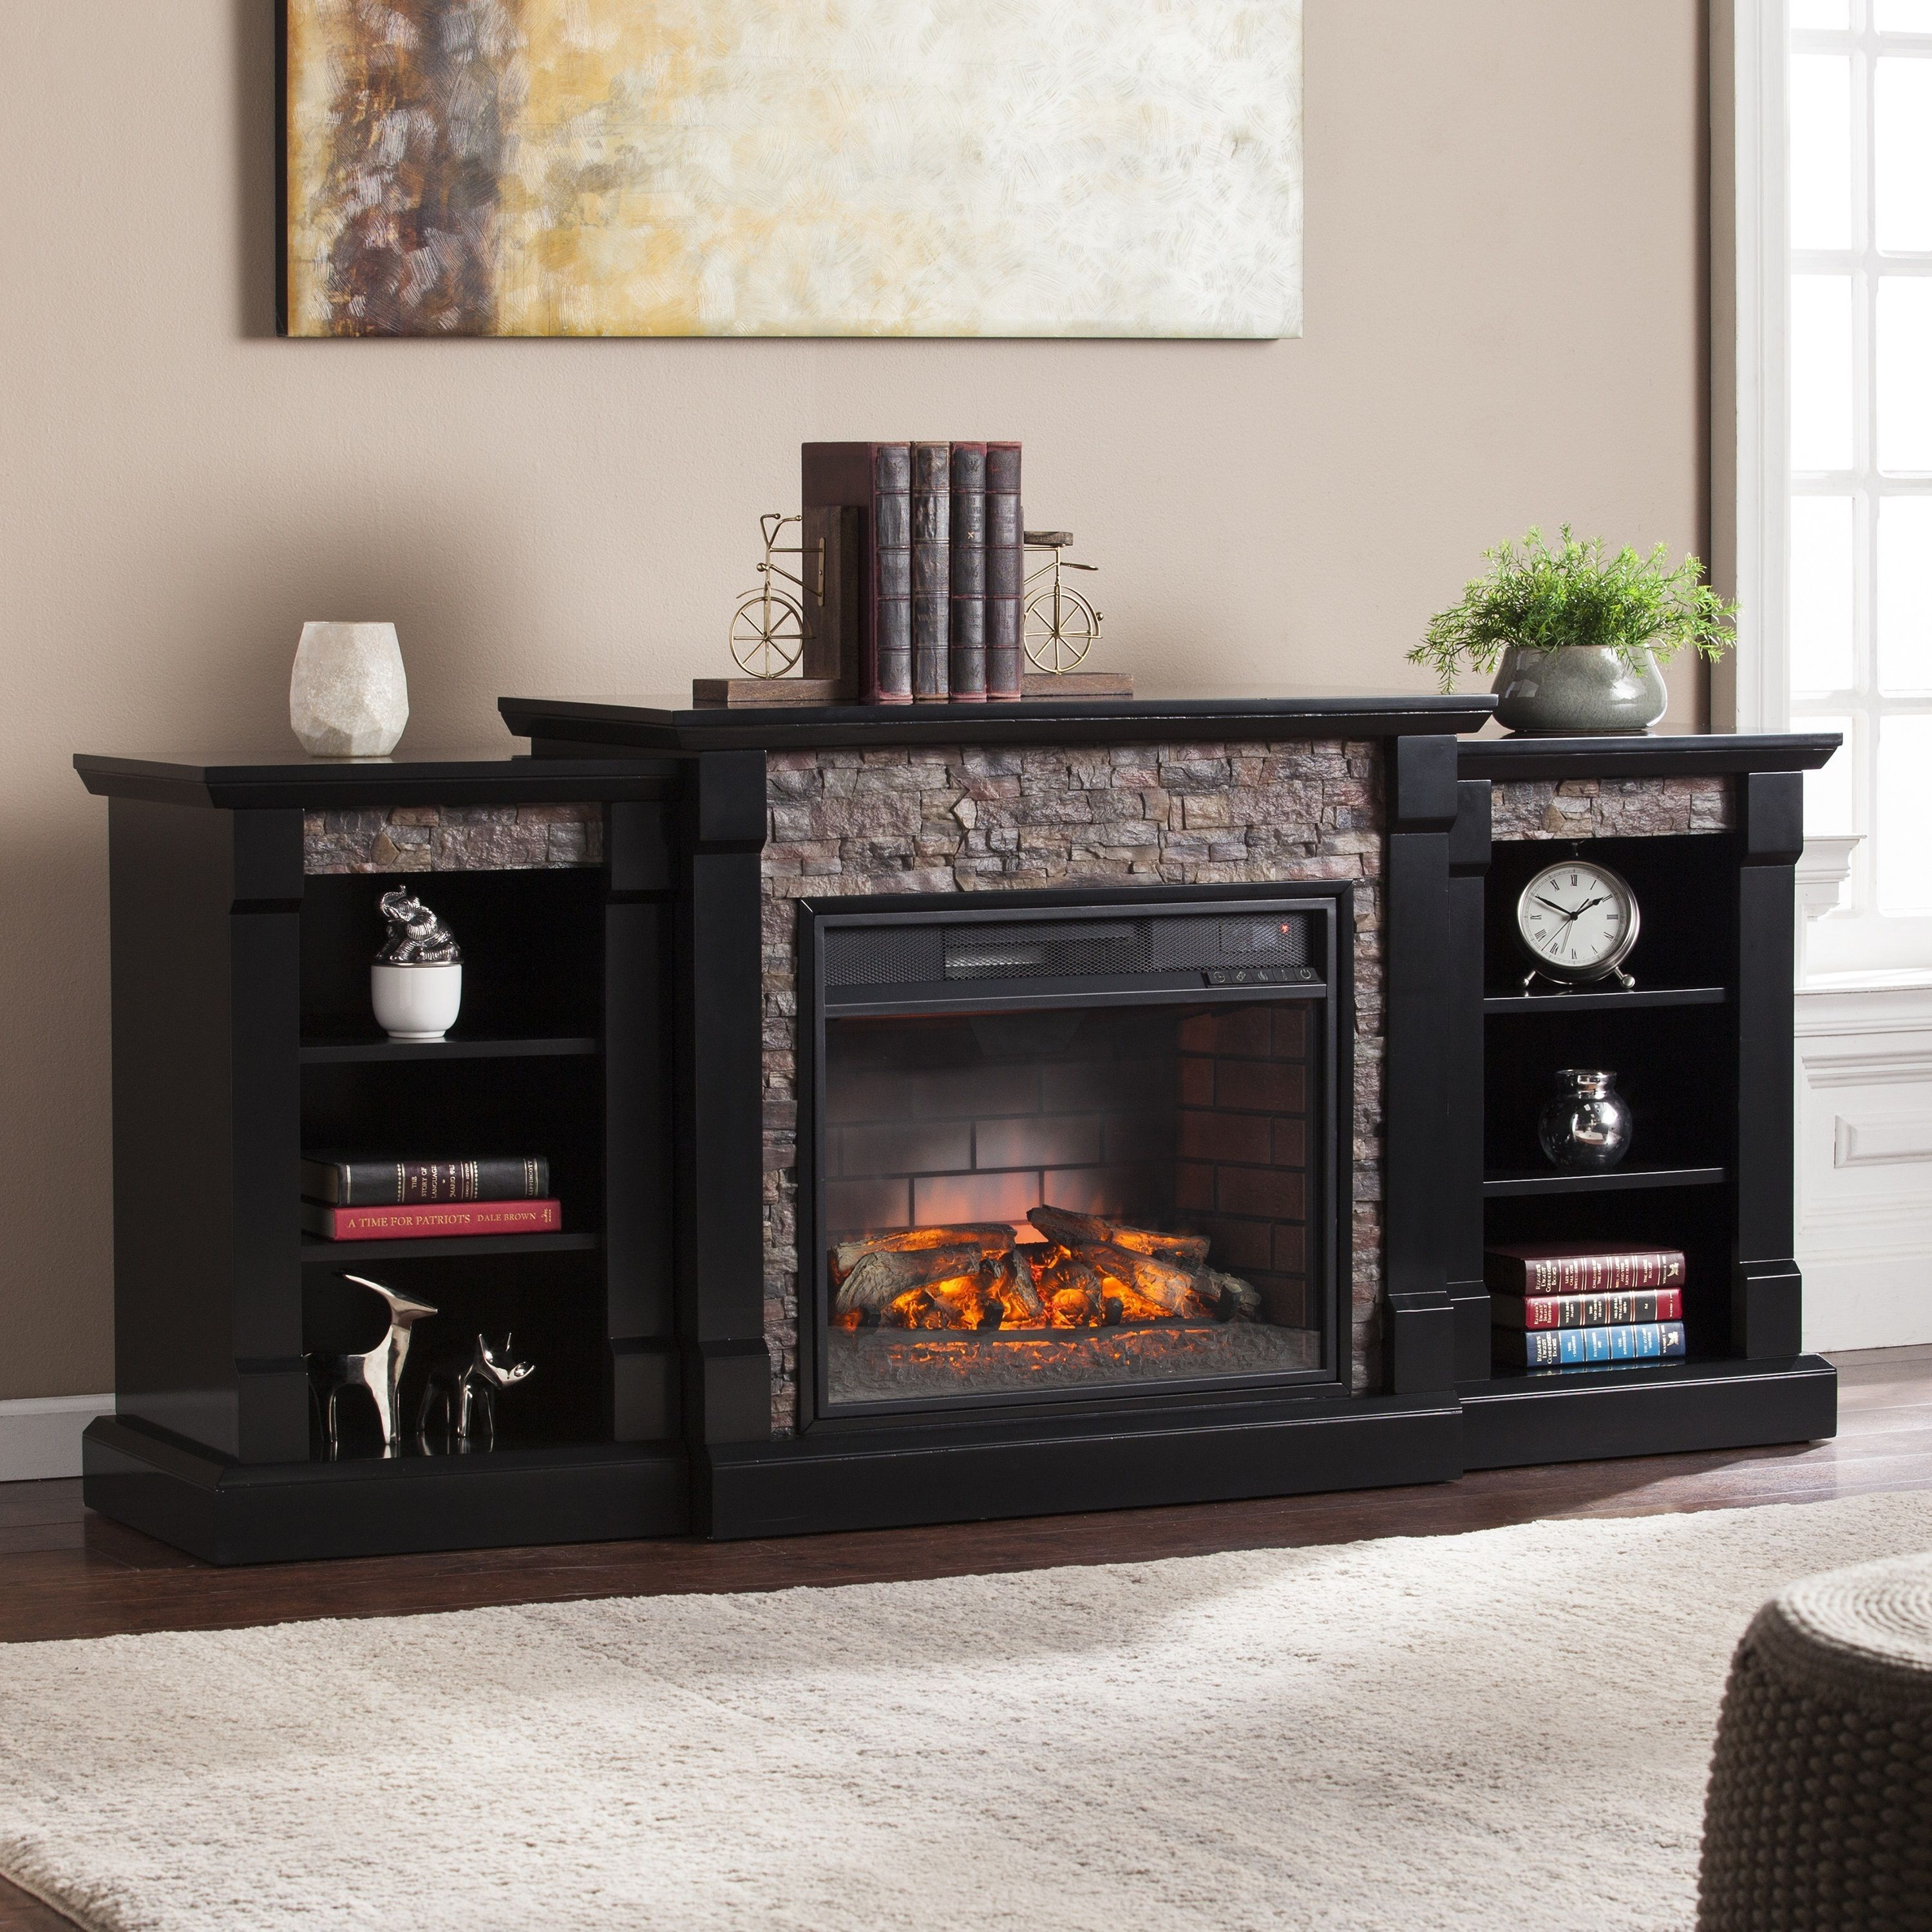 Stone Electric Fireplace Tv Stand Oliver James Lotto Black Faux Stone Infrared Electric Fireplace